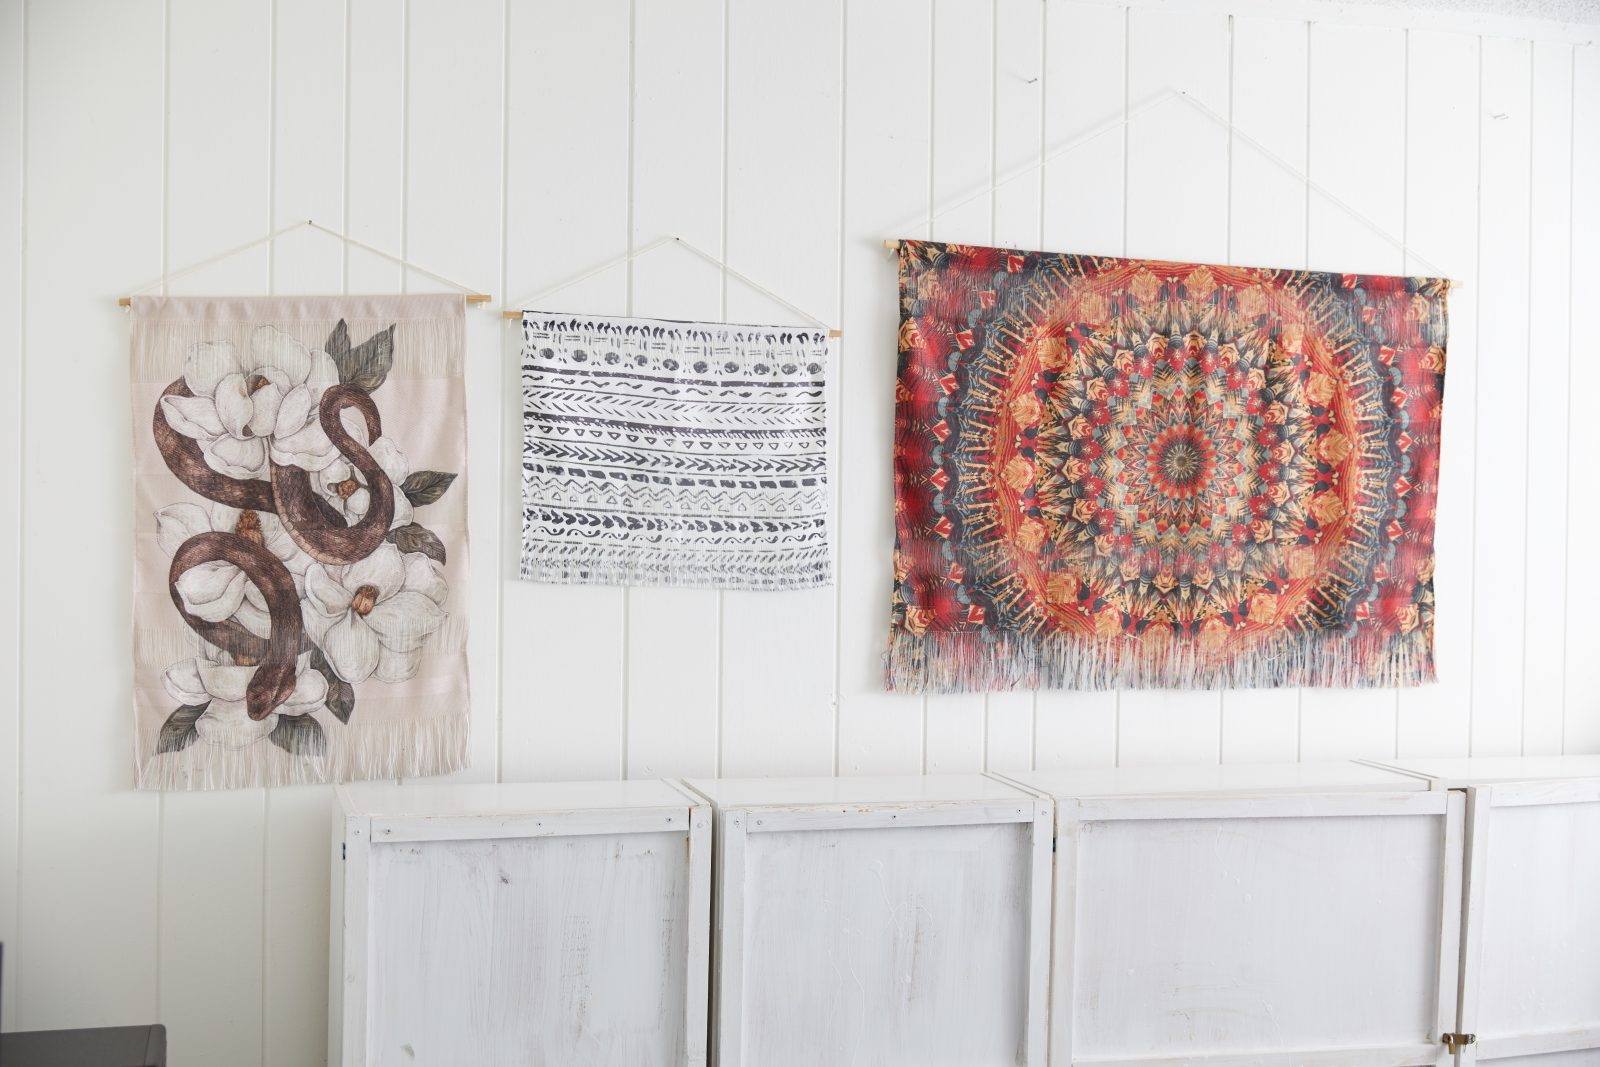 Our wall hangings elevate any space by adding texture dimension and a natural look and feel crafted from yarns in varying textures and patterns